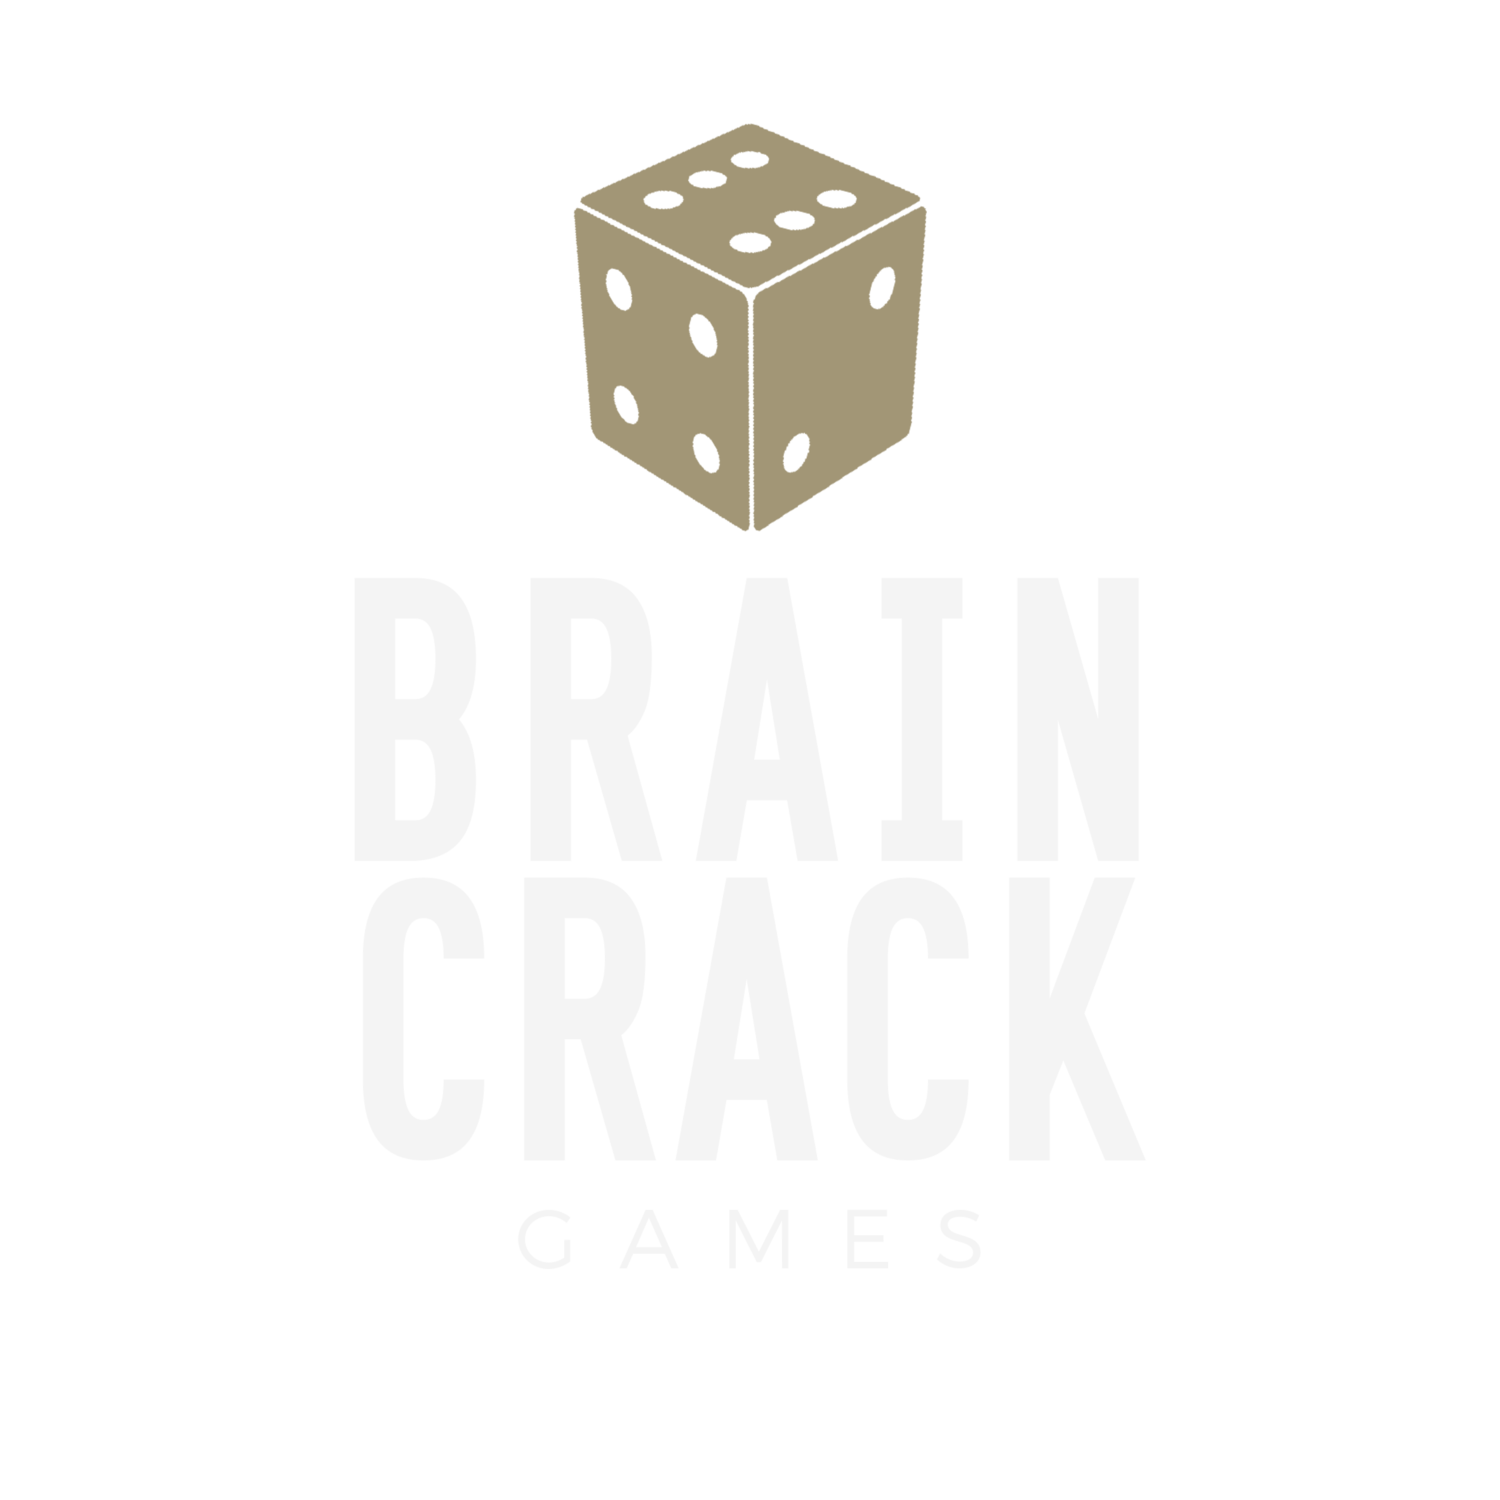 Braincrack Games